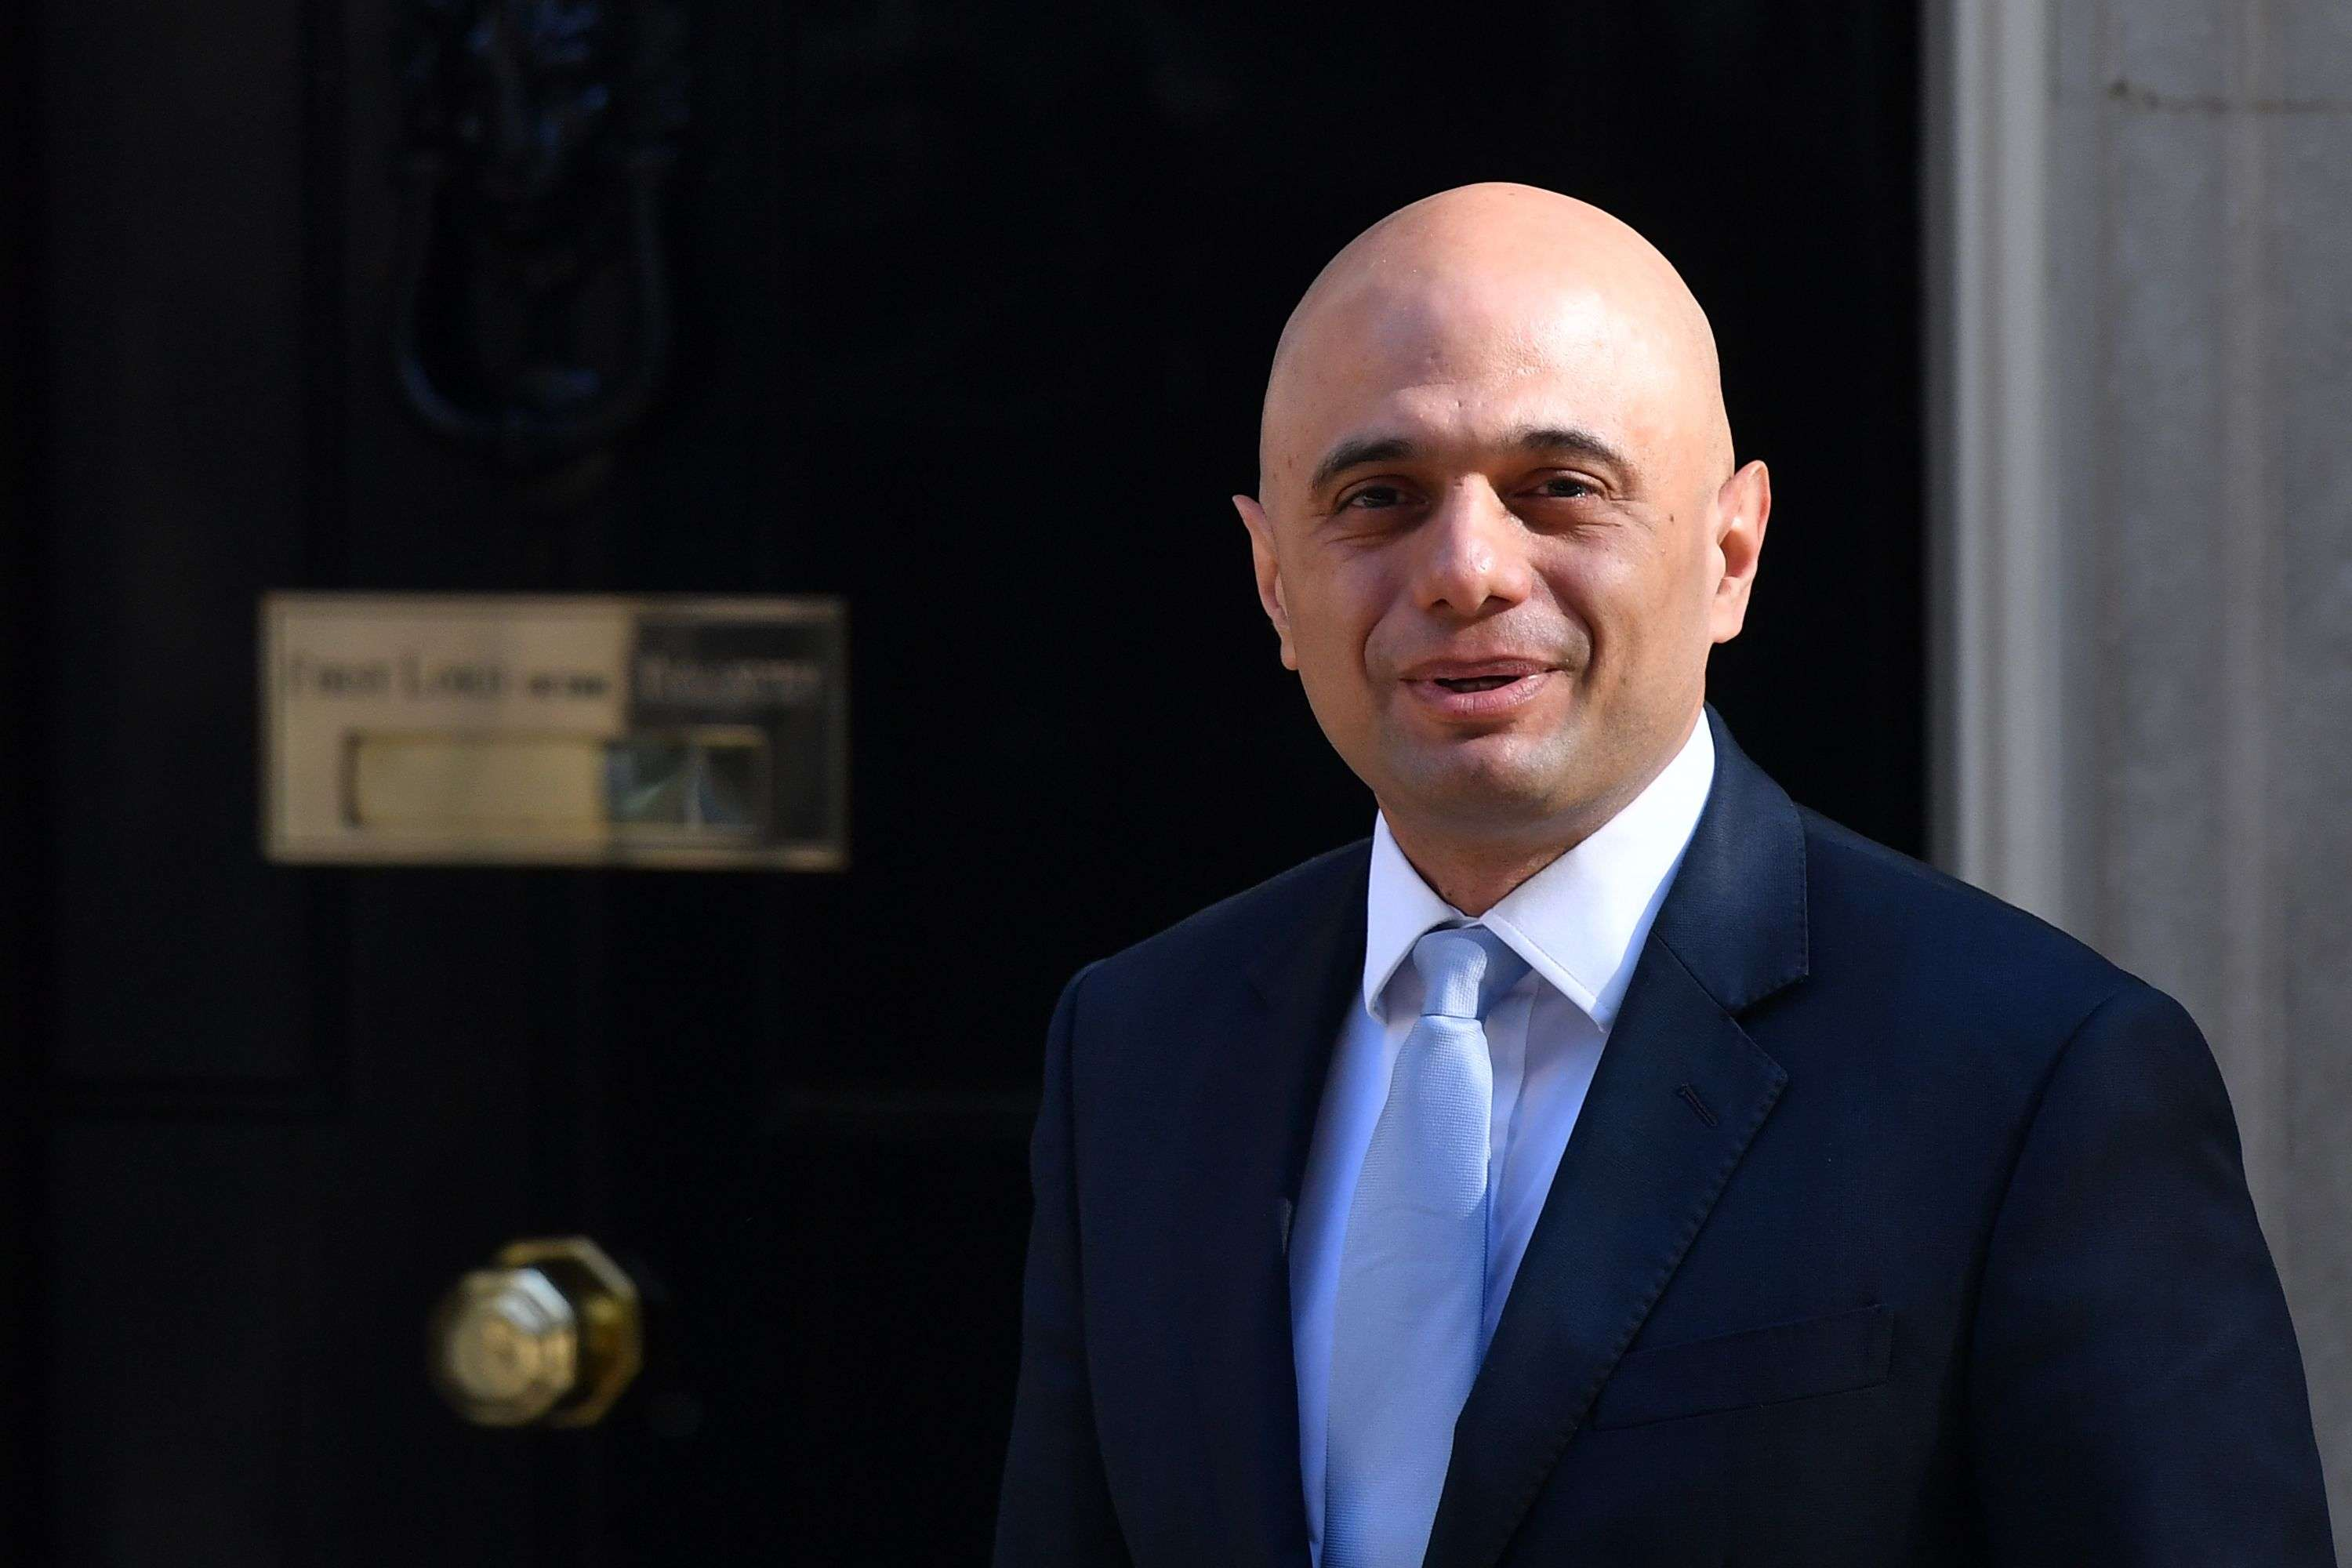 Conservative Muslim at the helm. Britain's new Home Secretary Sajid Javid arrives for the weekly meeting of the cabinet at Downing Street in London on May 1. (AFP)